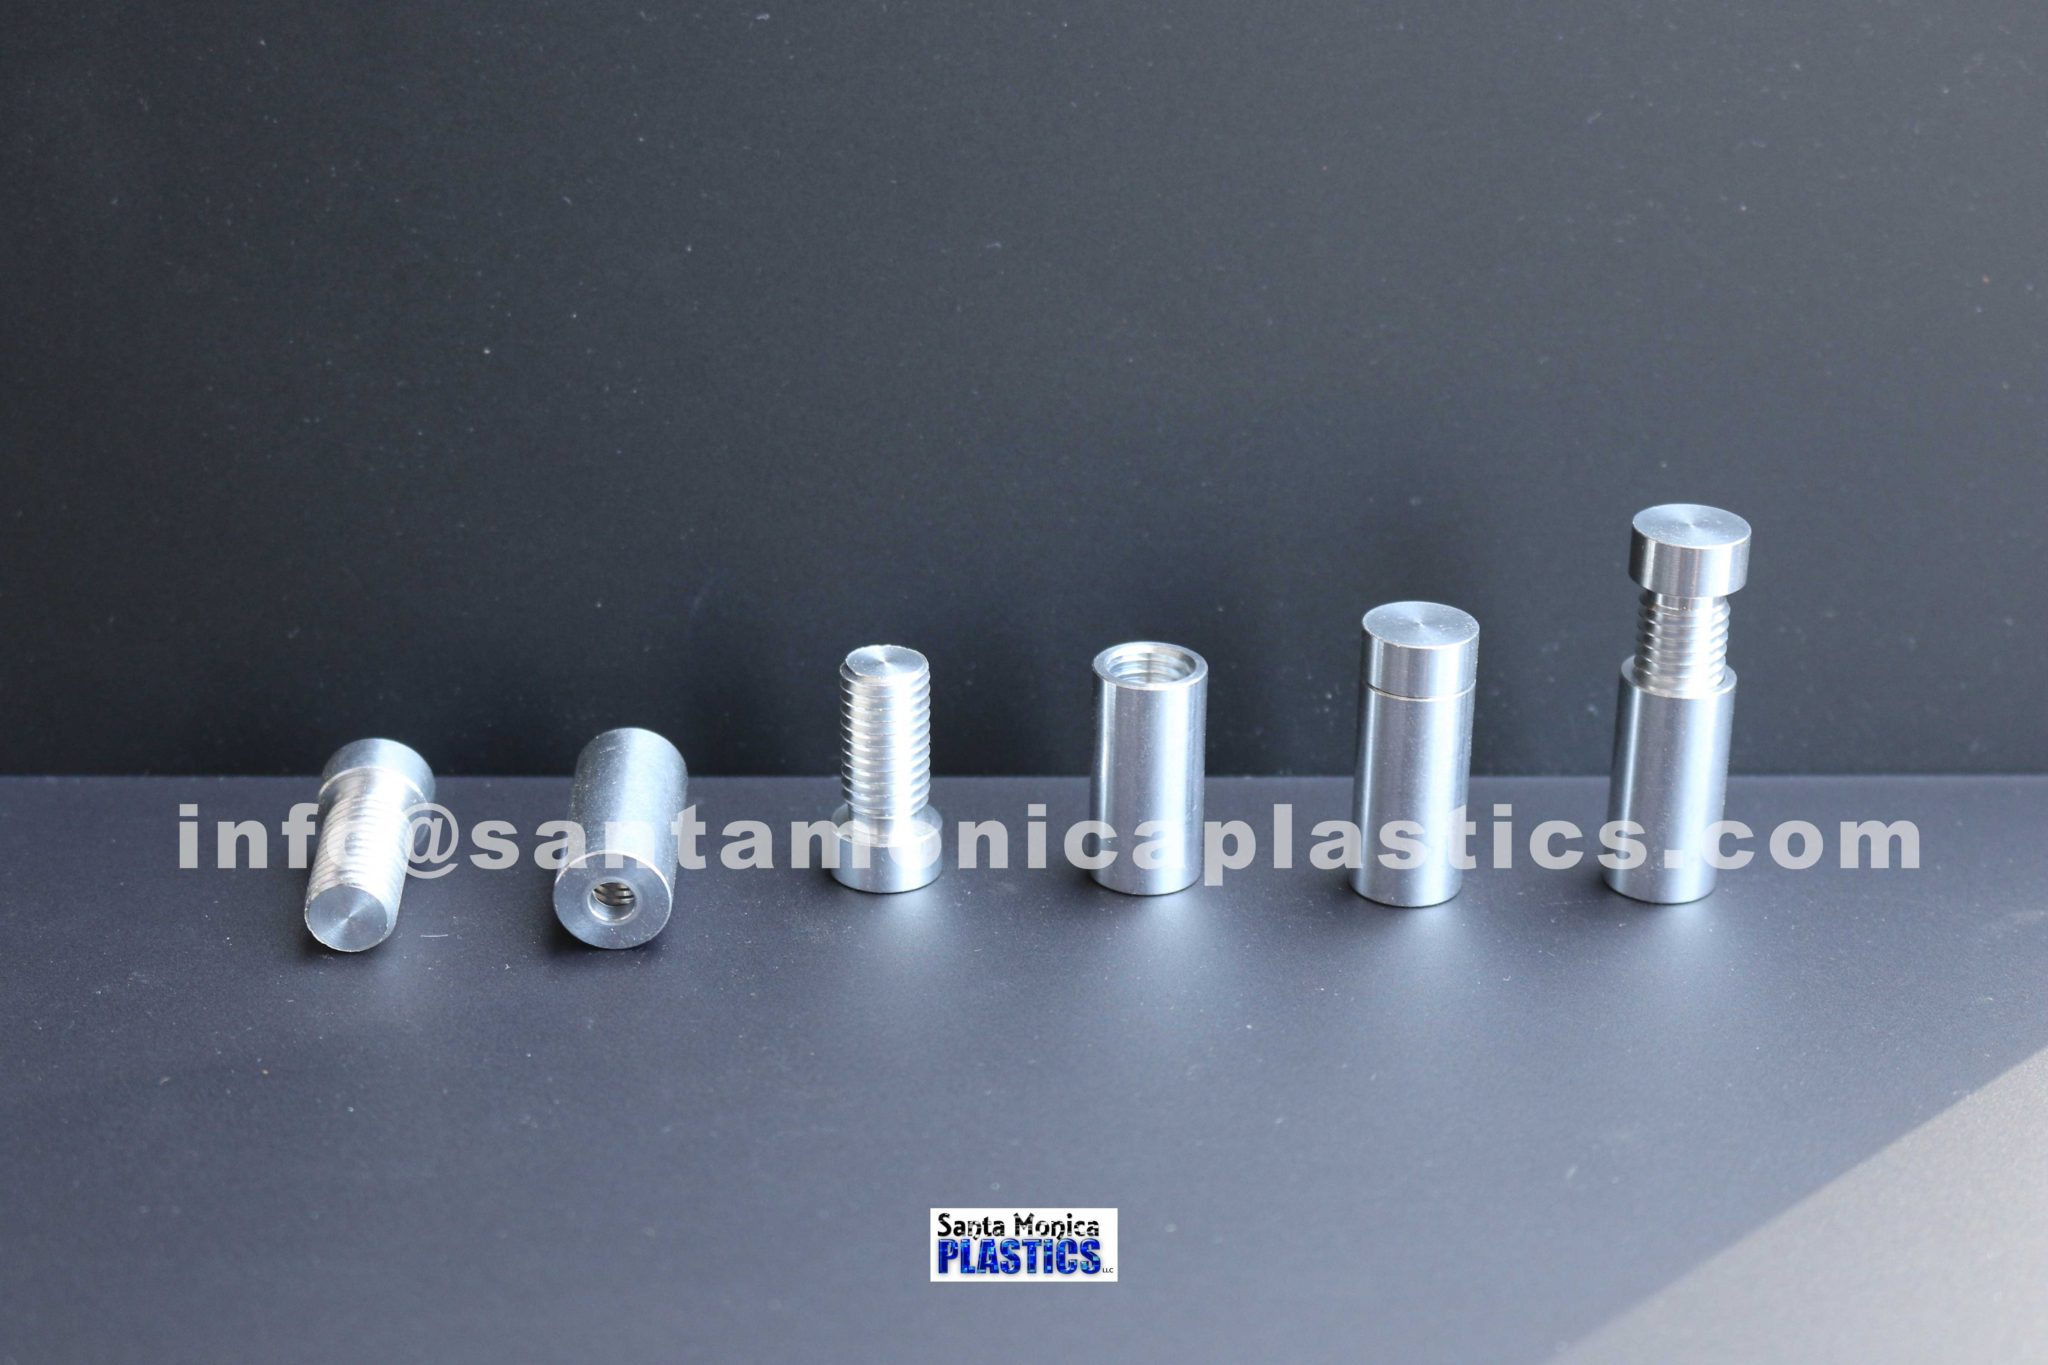 "Aluminum Standoffs #2 Size 0.5"" X 1.25"" (4 Pieces)"